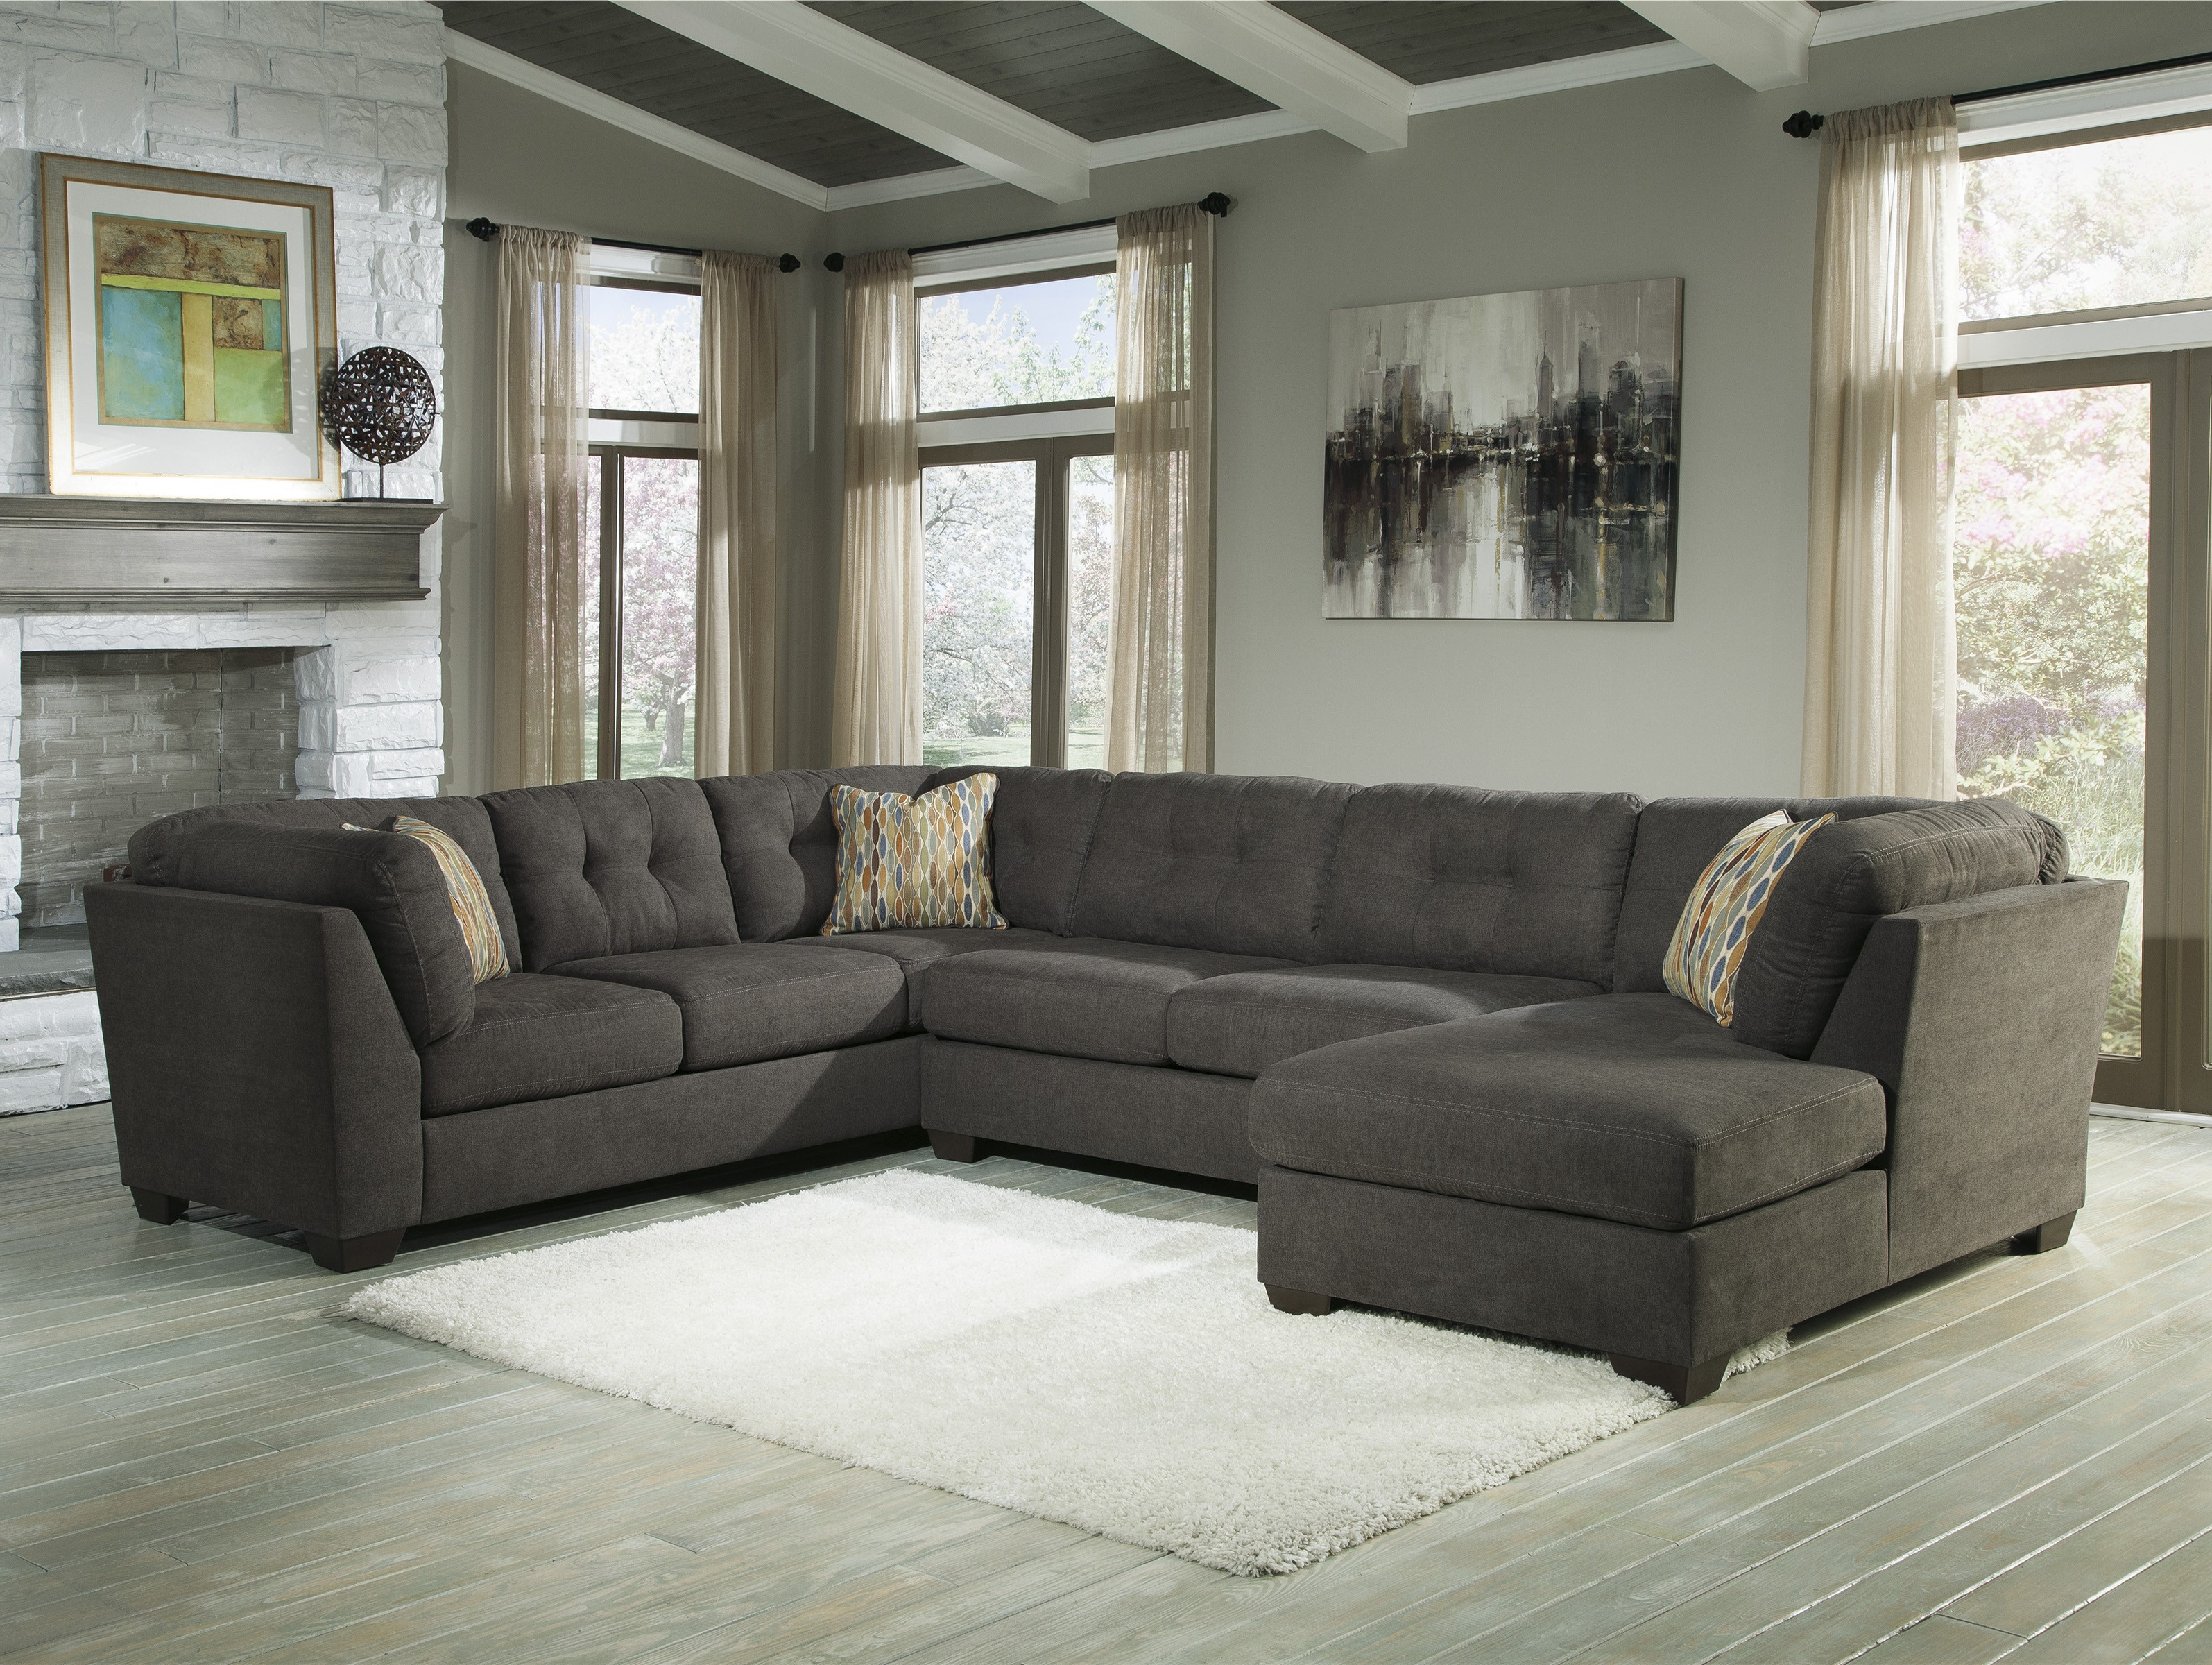 Avery 2 Piece Sectionals With Raf Armless Chaise Intended For 2018 Armless Sectional Sofa With Chaise (View 4 of 20)